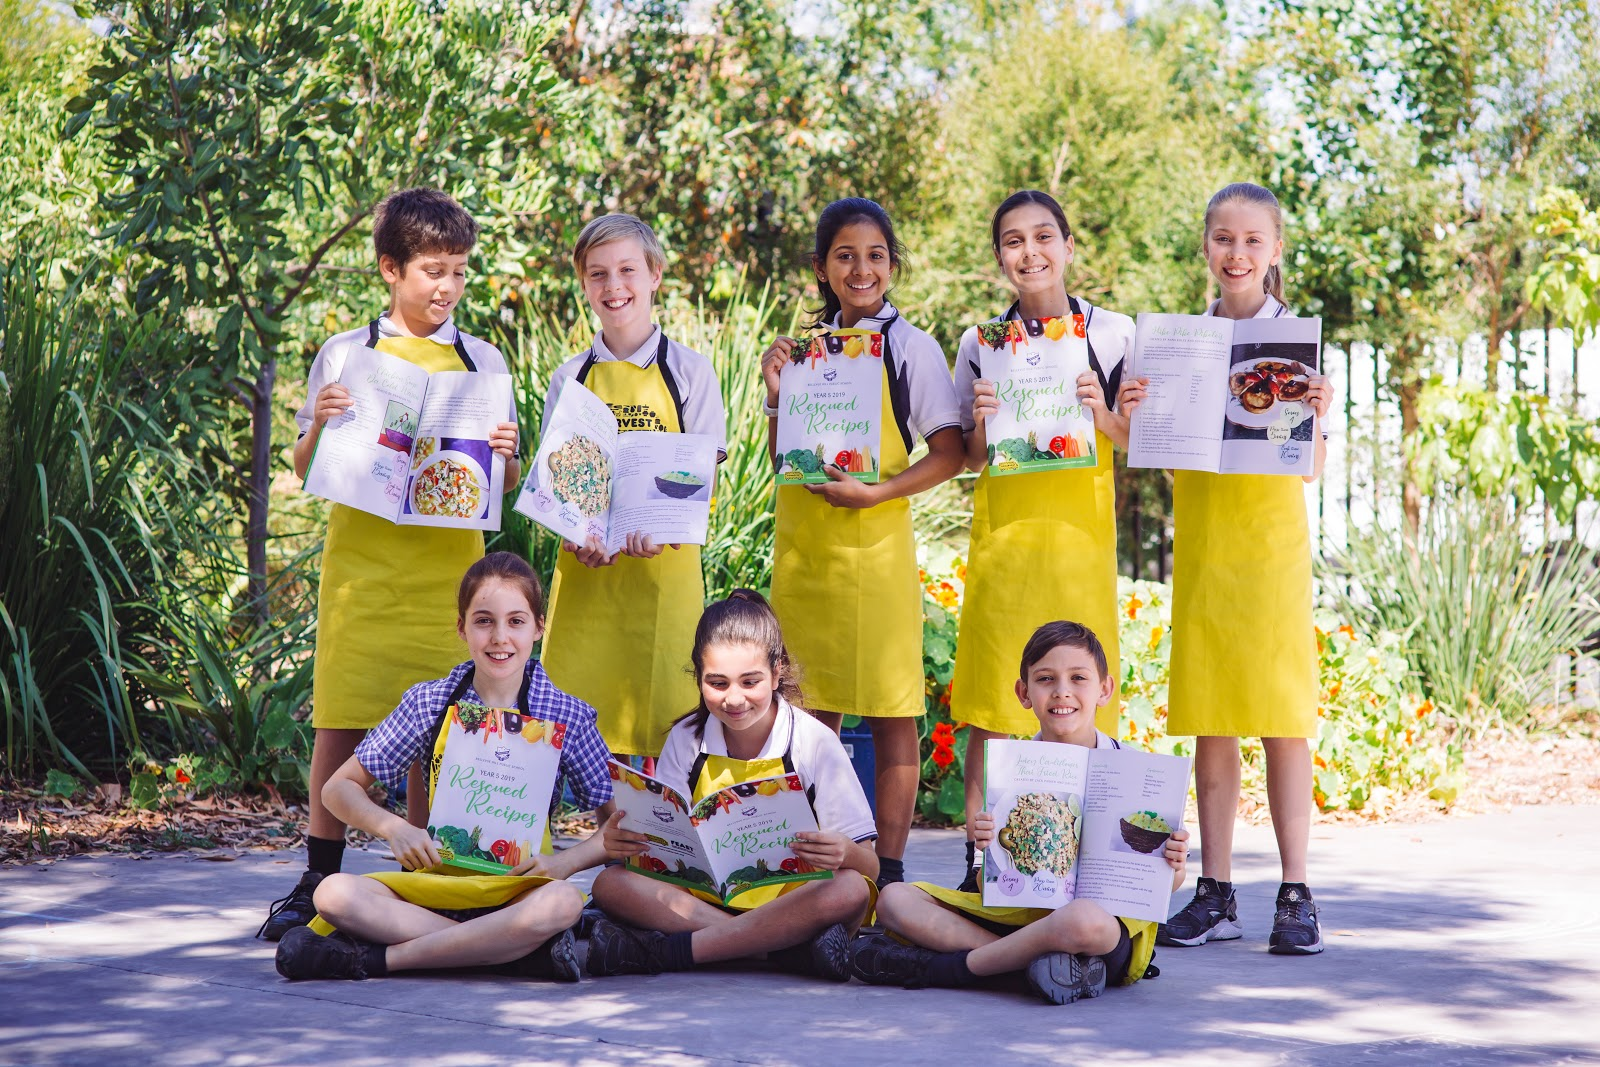 The culmination of the program is the 'School Cookbook' which brings to life everything the students have learnt about food waste and healthy eating.